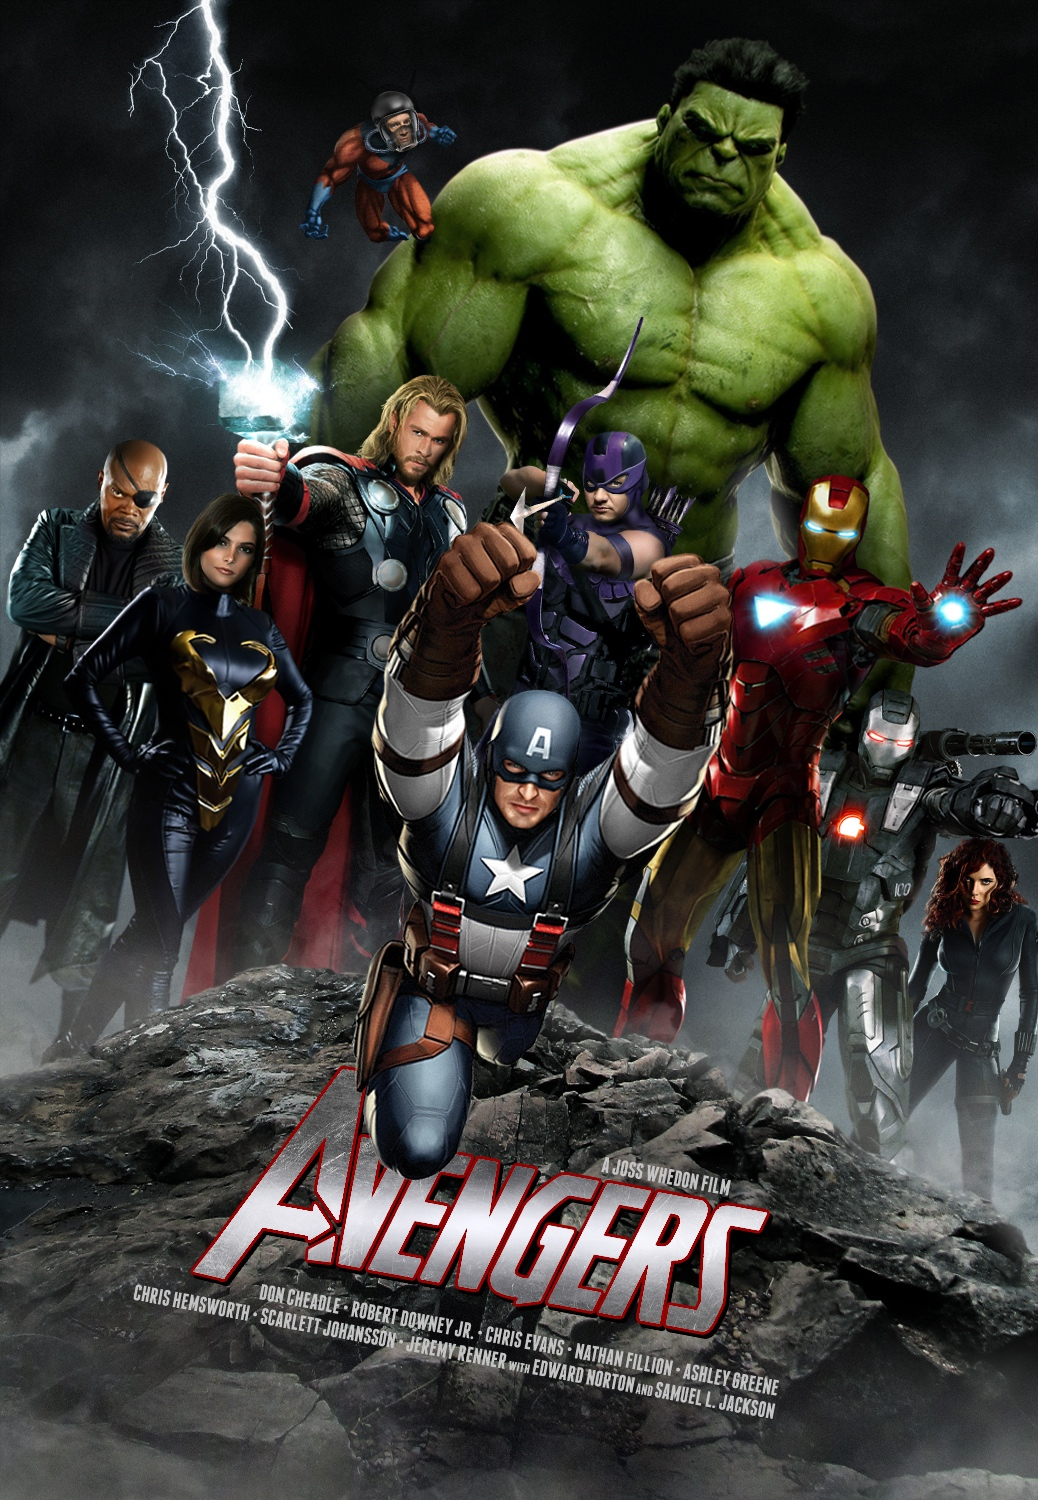 The Avengers: Fan Made Poster